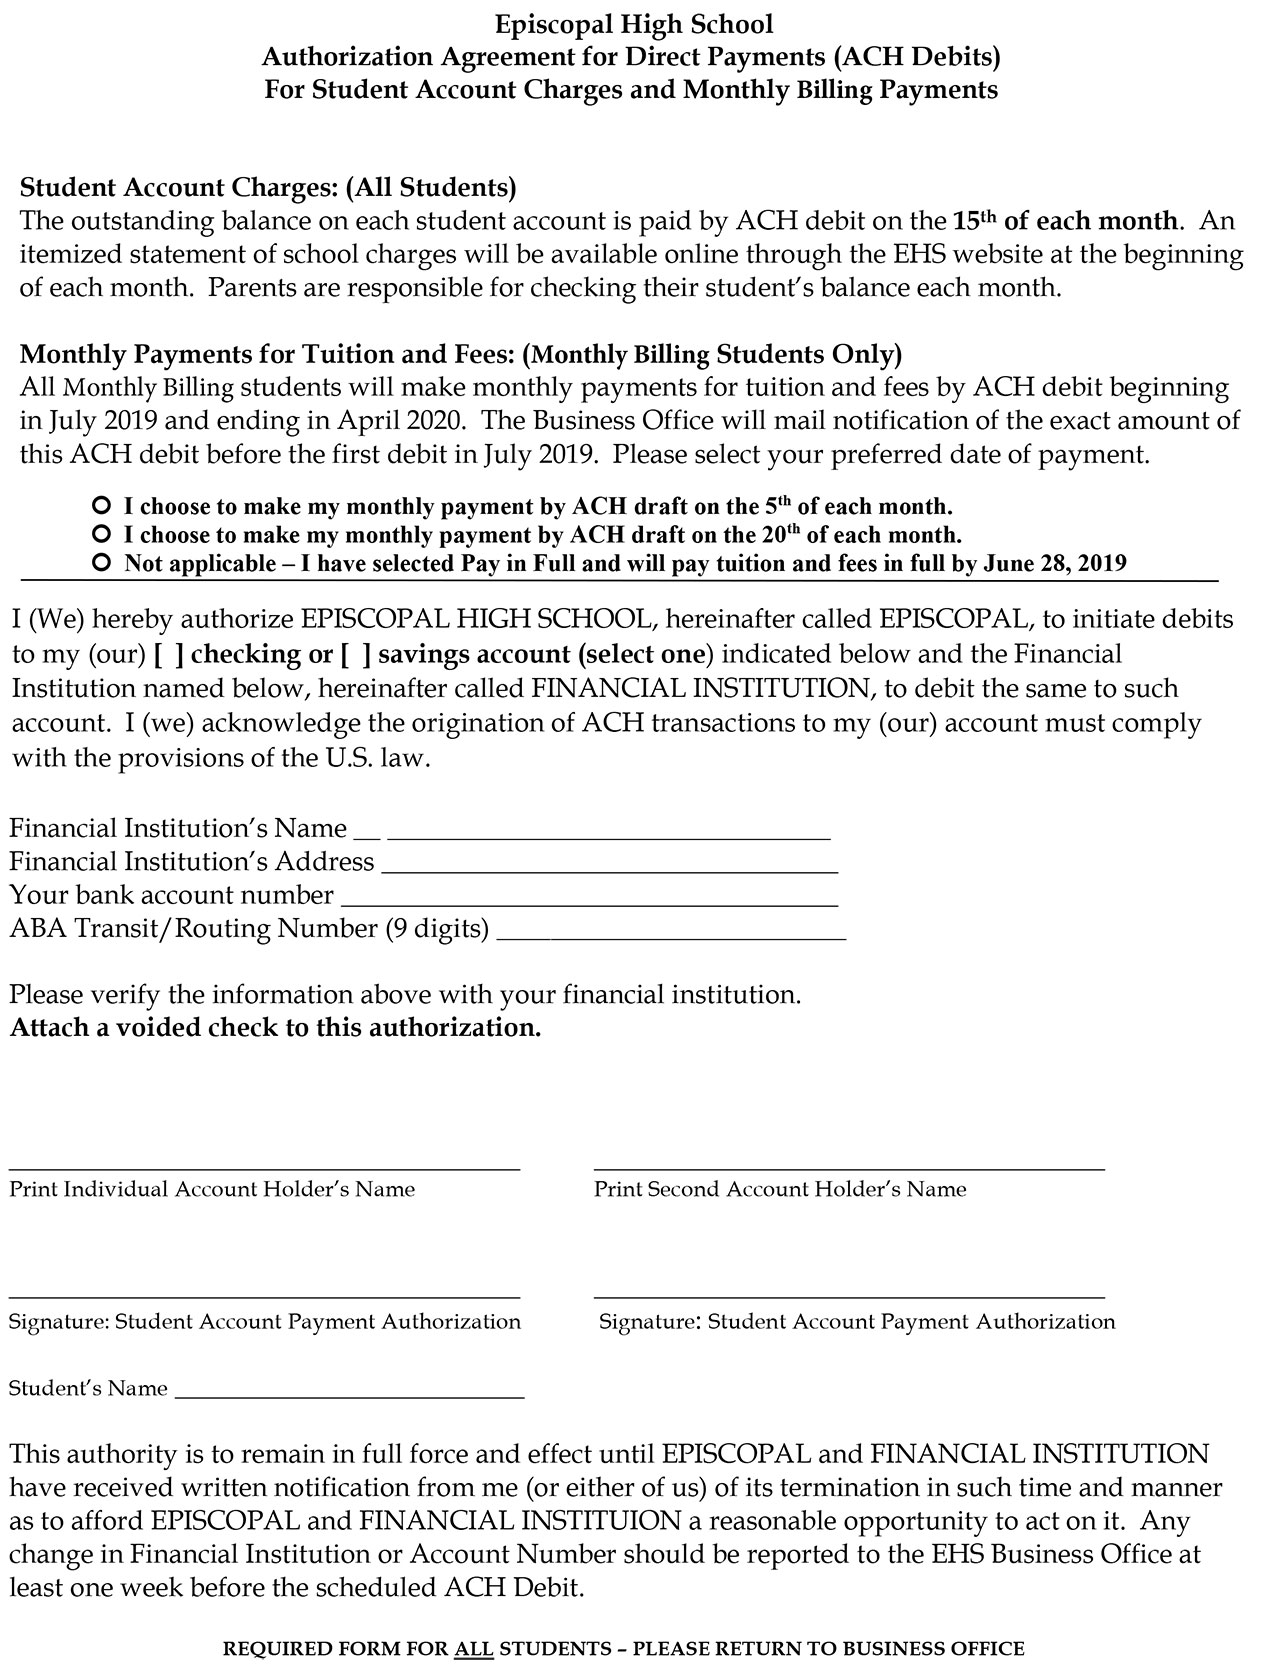 Authorization Agreement for ACH Debits - Episcopal High